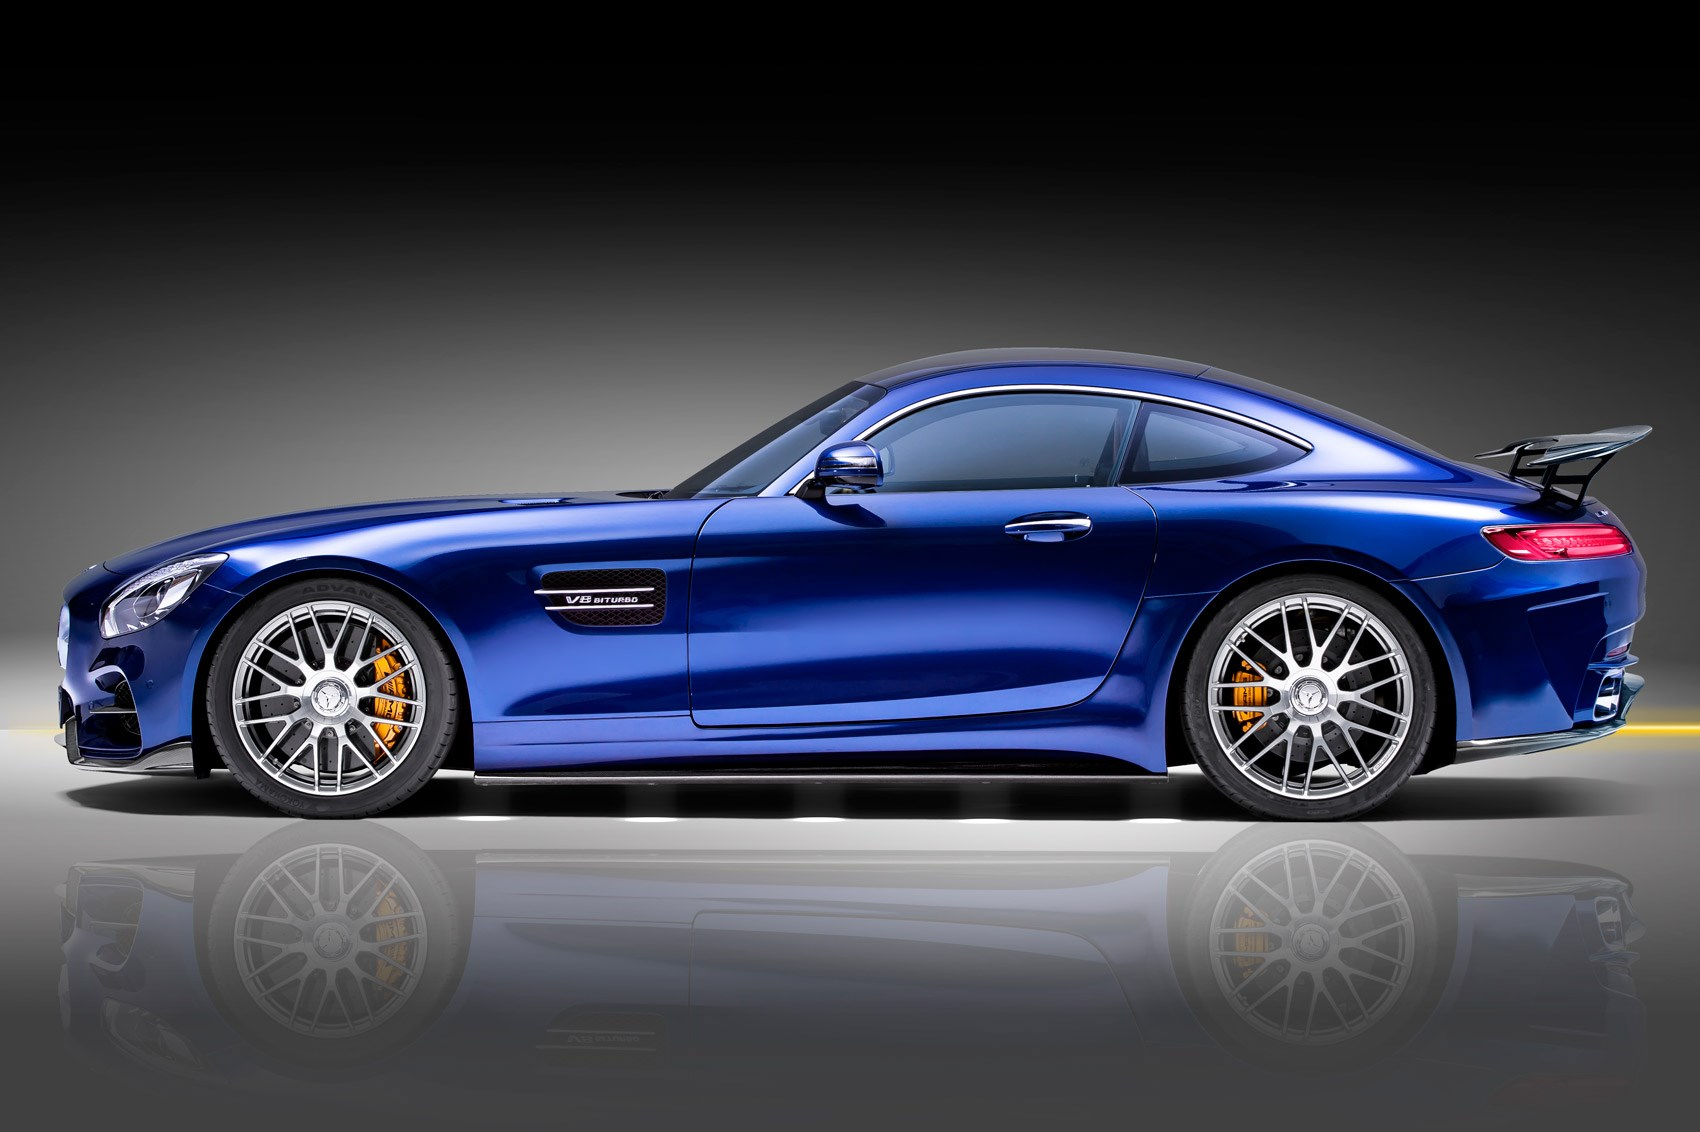 MercedesAMG GT S gets Piecha makeover by CAR Magazine